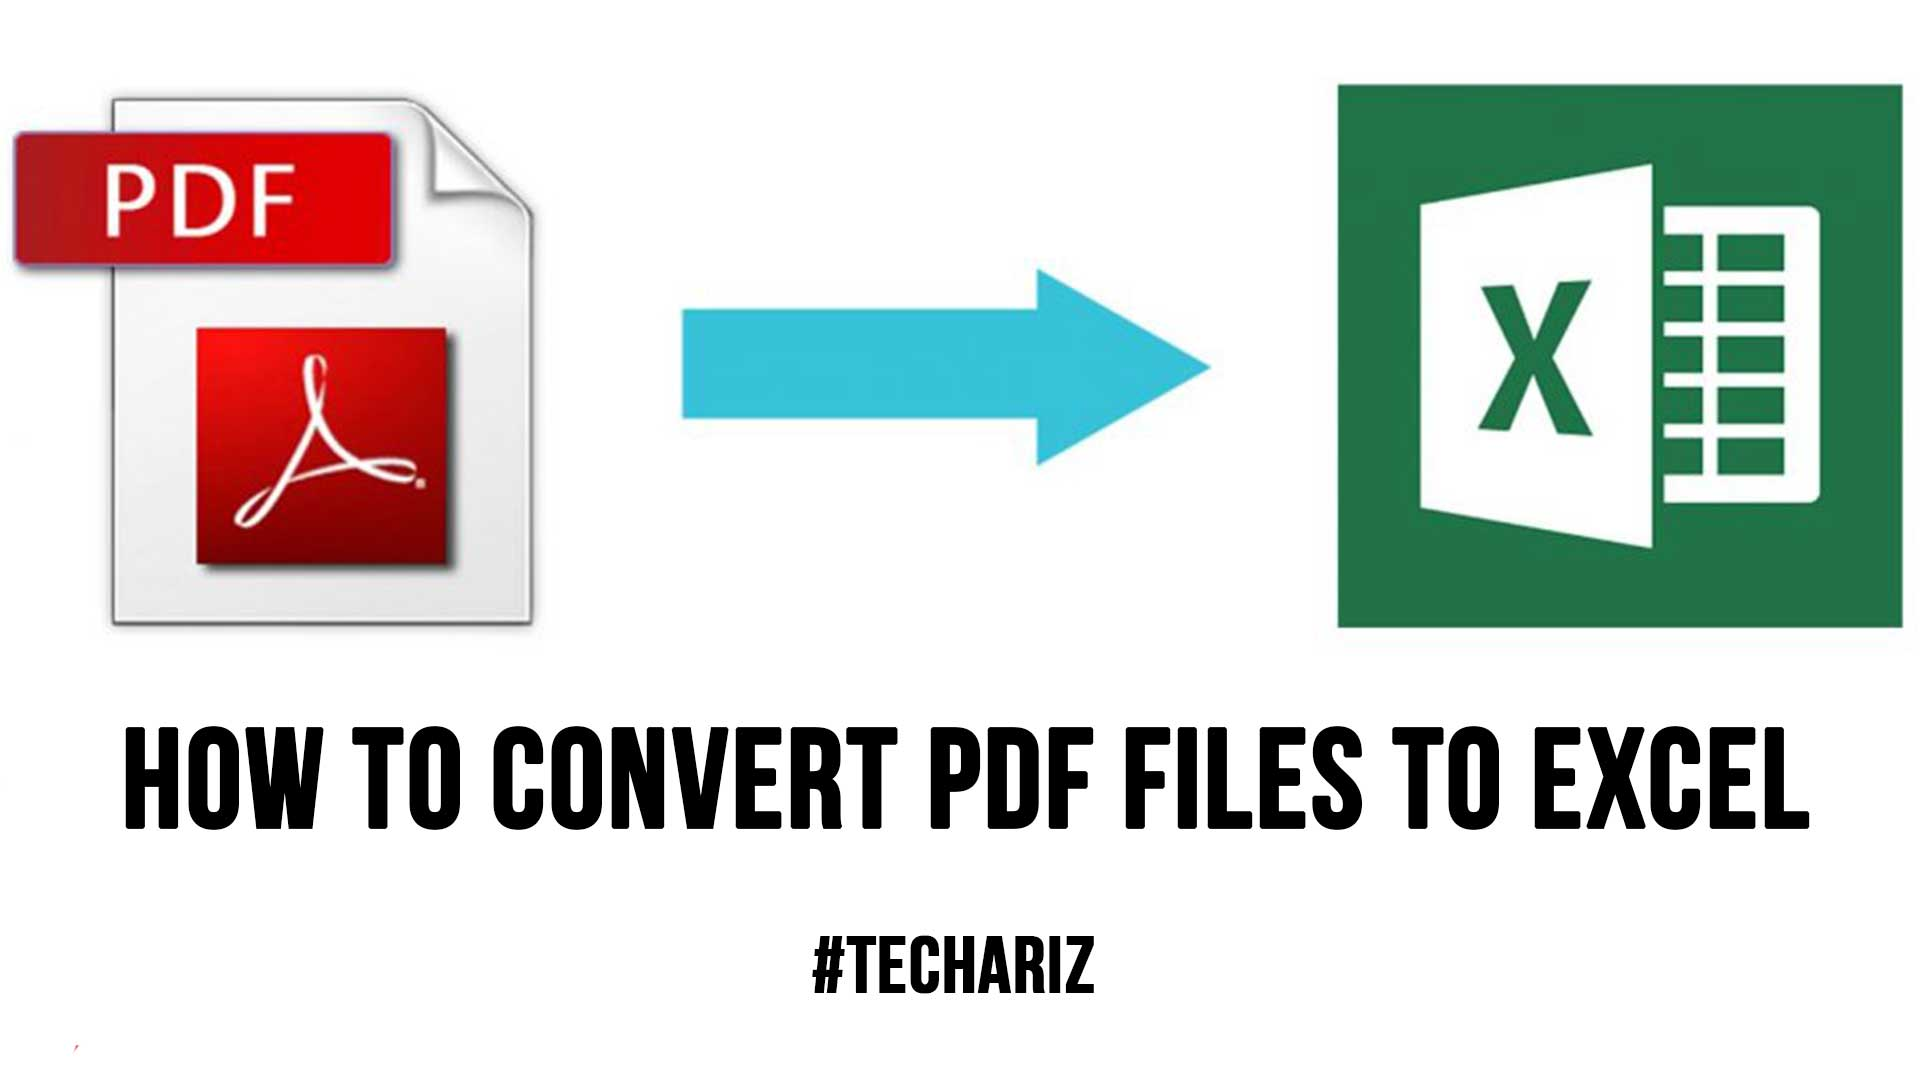 How To Convert PDF Files To Excel